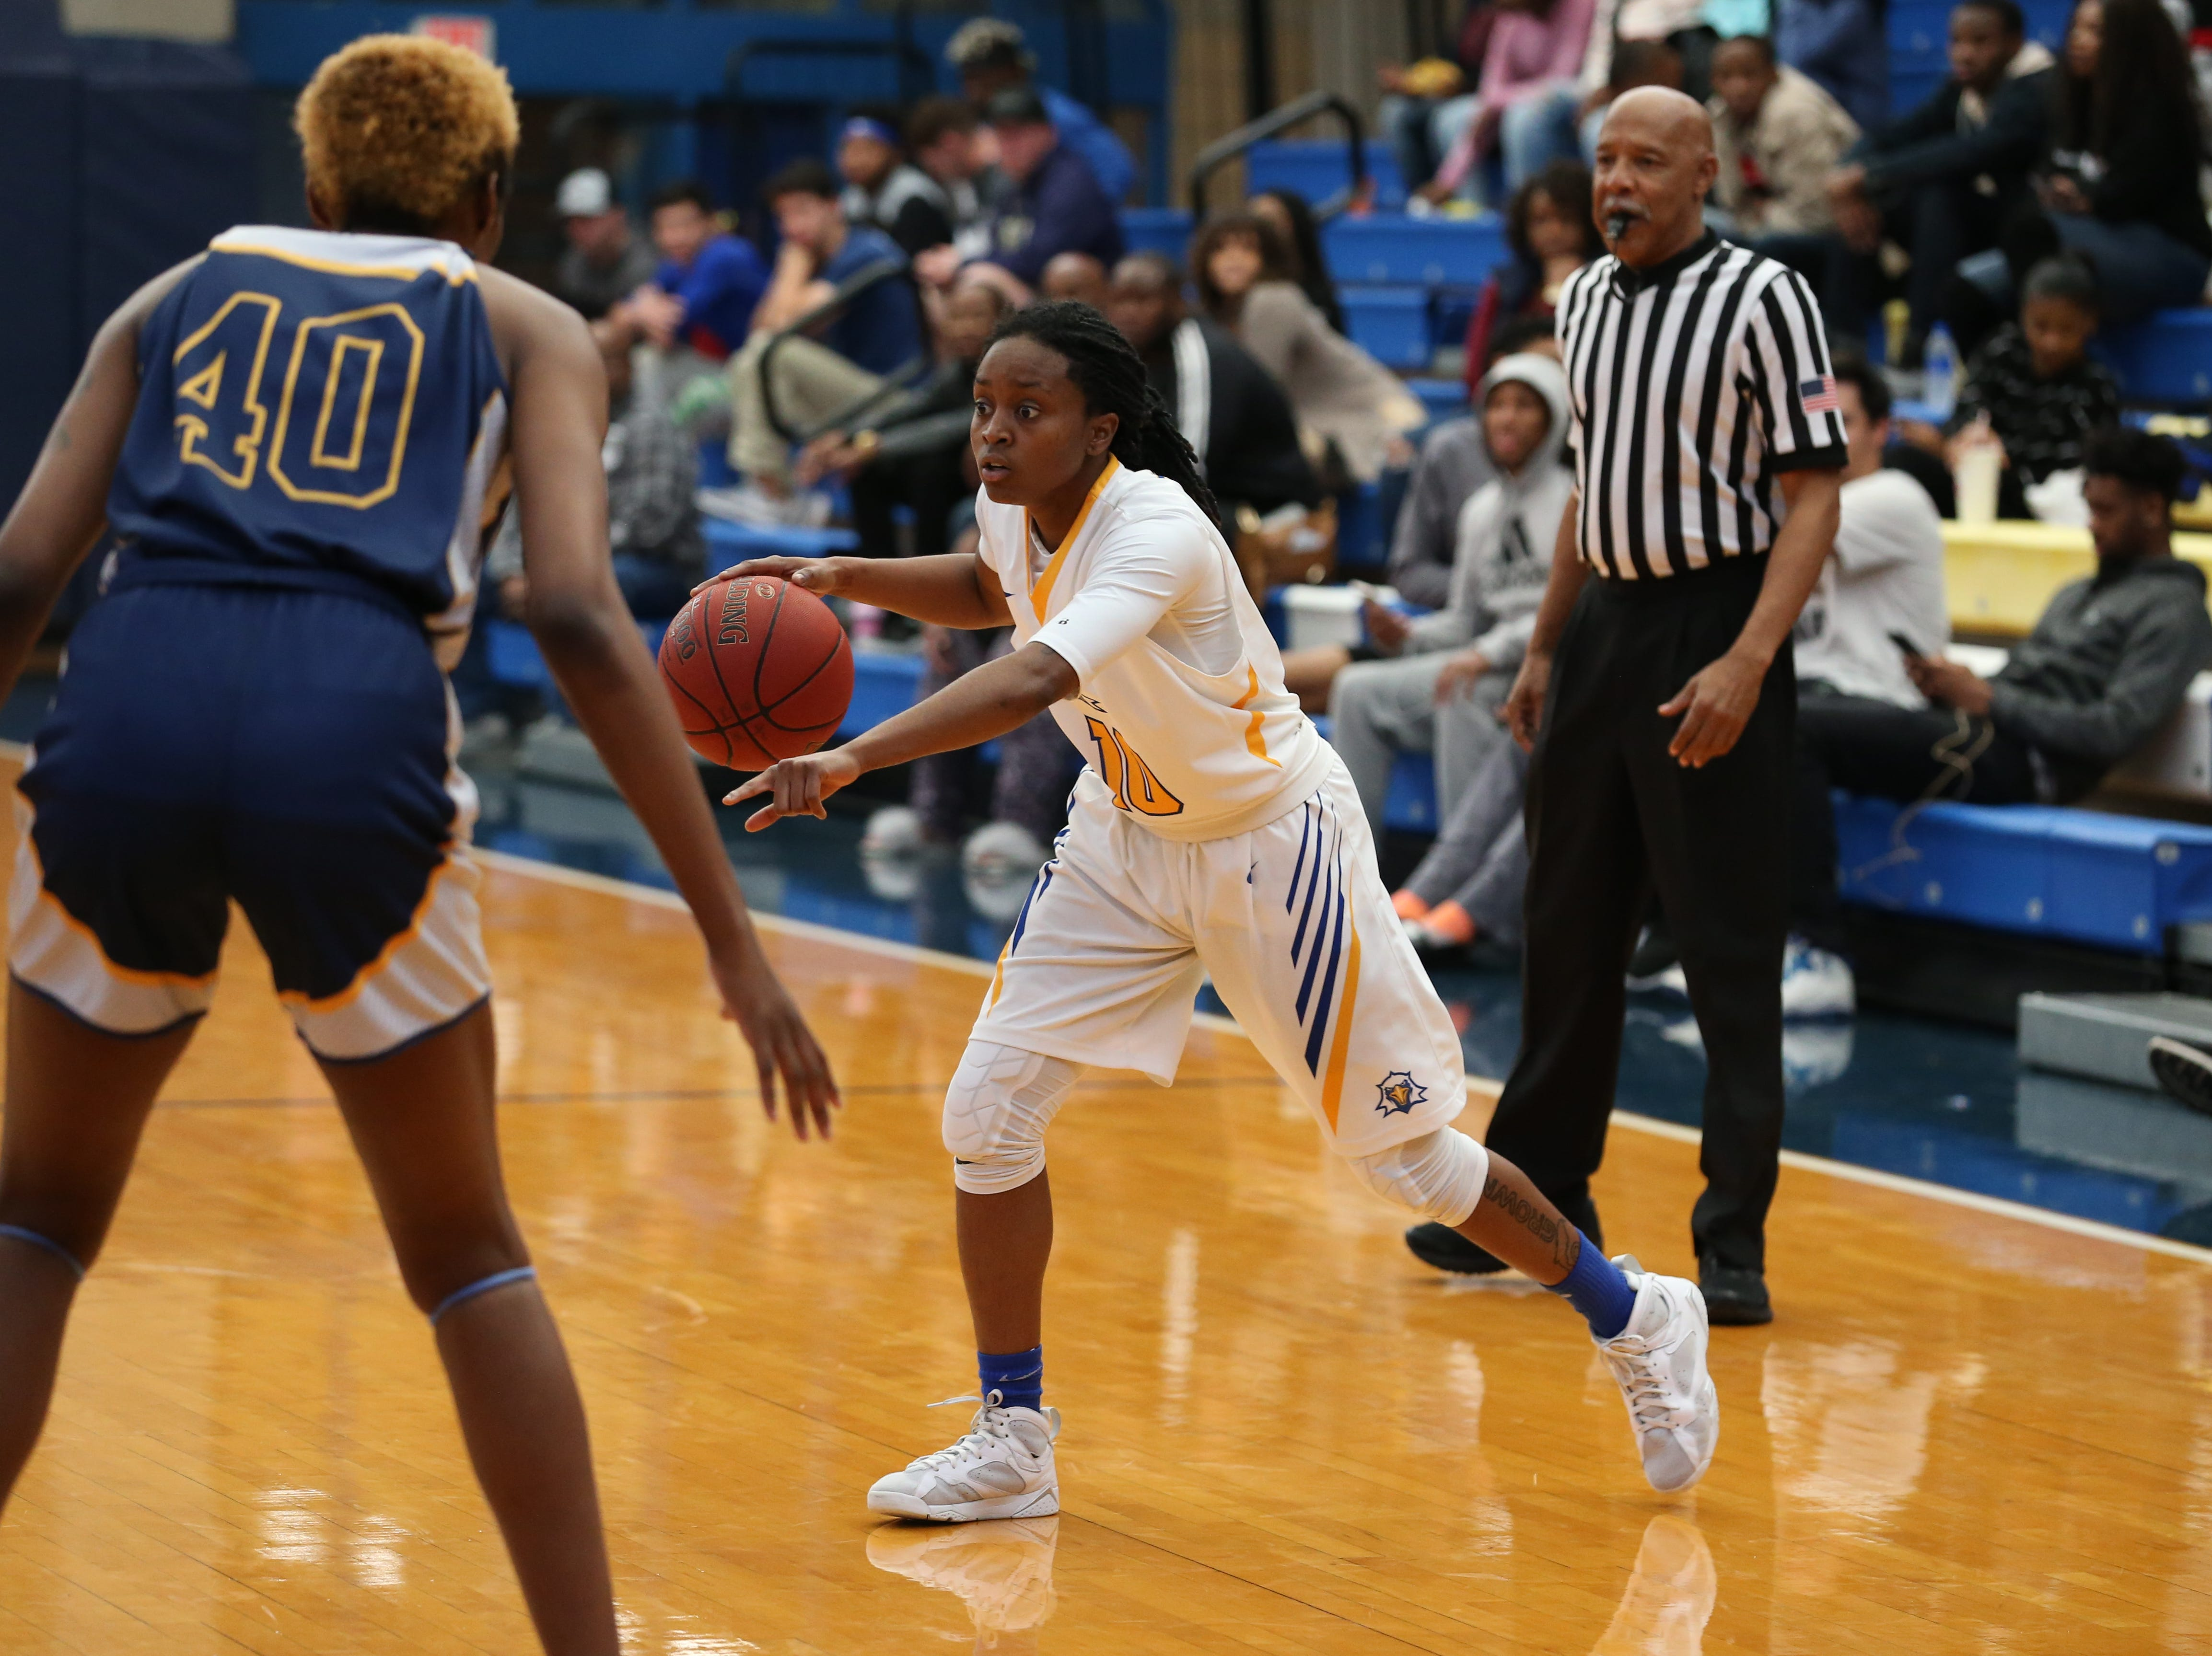 Tallahassee Community College Eagles Tameria Johnson (10) calls a play. The Tallahassee Community College Eagles host the Gulf Coast State College Commodores in a conference match-up in the Eagledome, Saturday, Jan. 5, 2019.